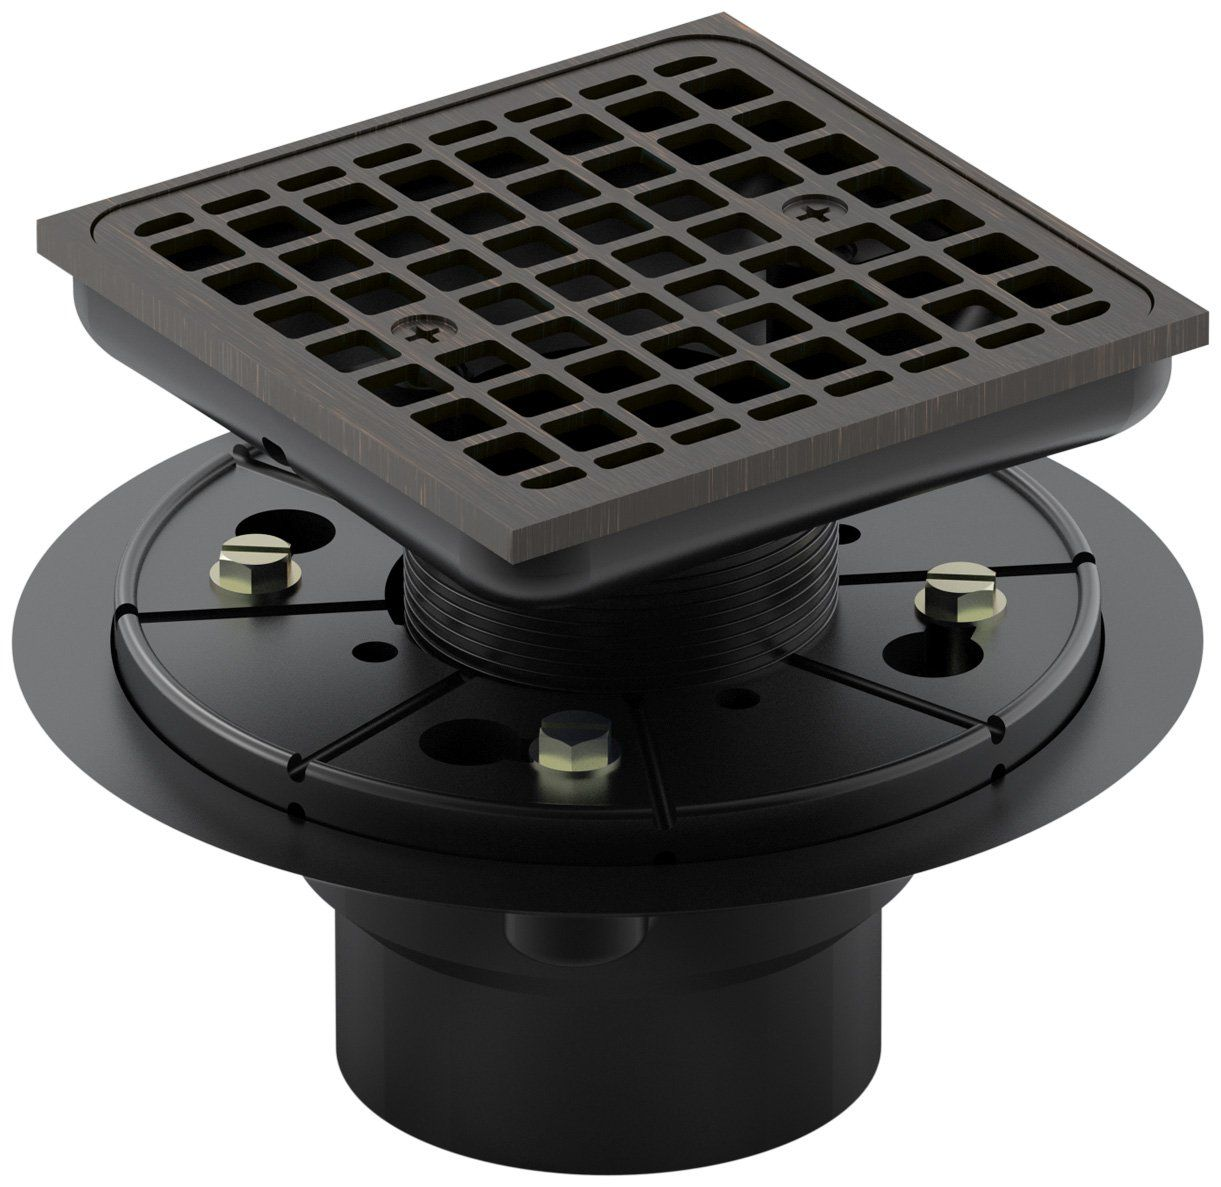 Kohler K-9136-2BZ Tile-In Square Shower Drain, Oil Rubbed Bronze - Shower Installation Kits - $73.41 Amazon.com